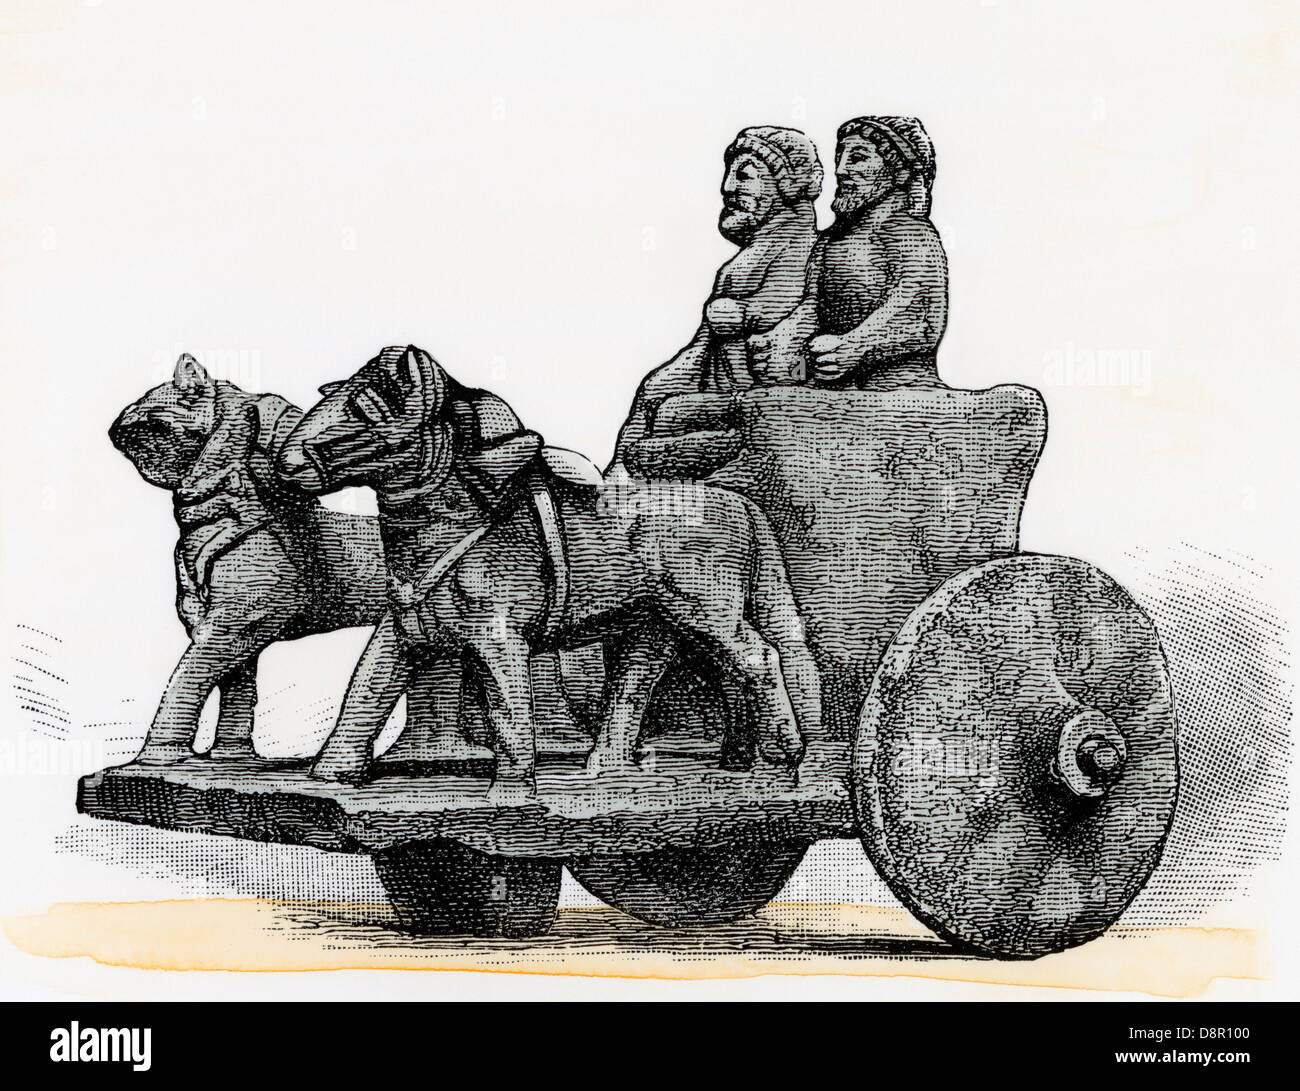 Ancient Phoenician chariot carved in stone. Hand-colored woodcut - Stock Image